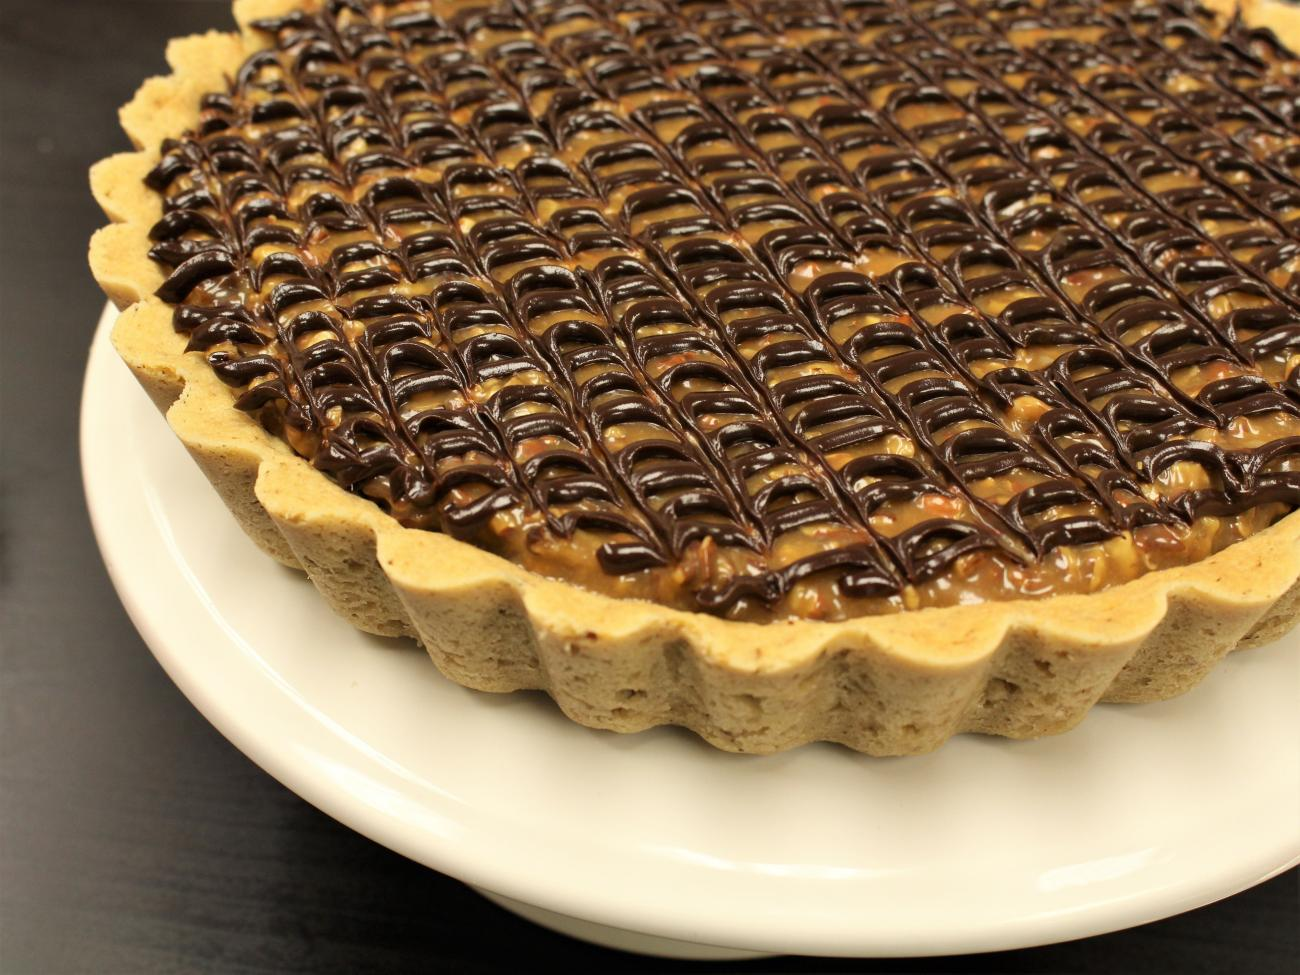 Recipe for Caramel Turtle Tart